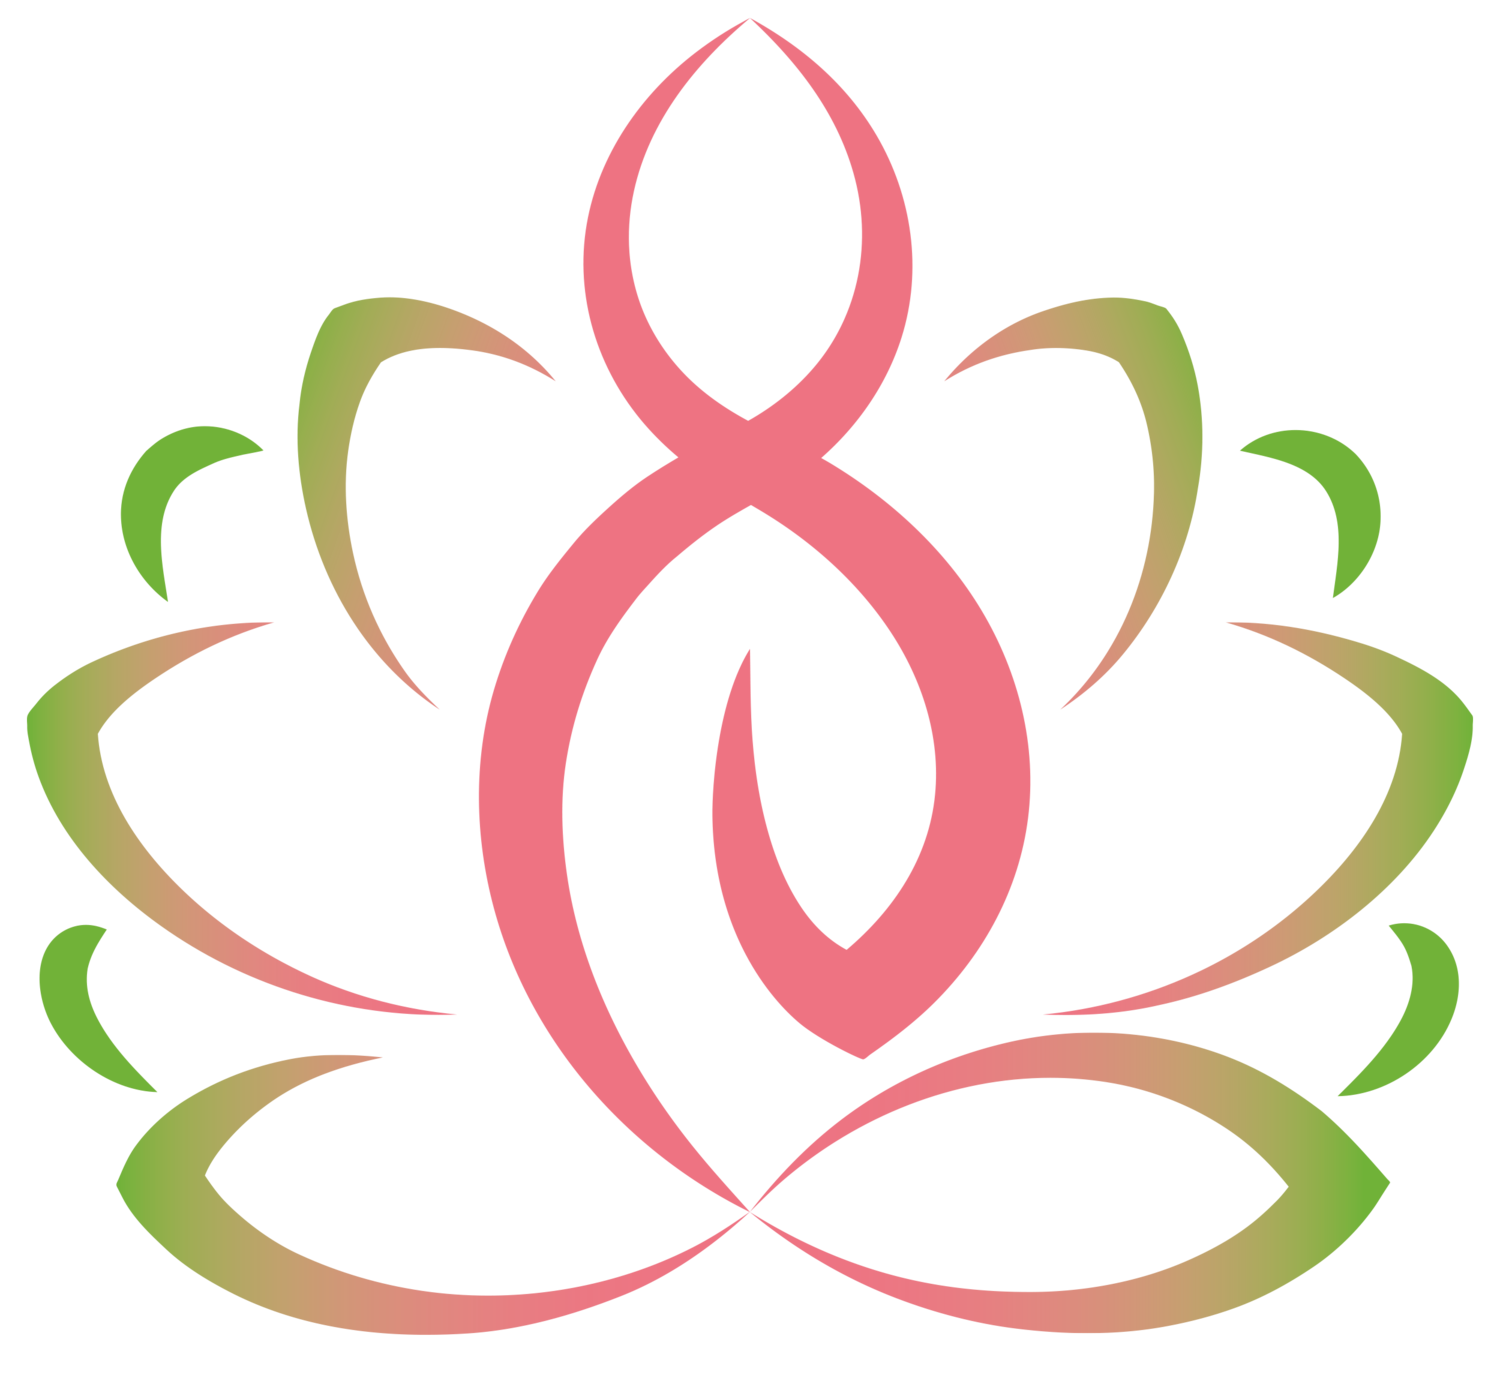 Meditation clipart peace mind. For of la vida